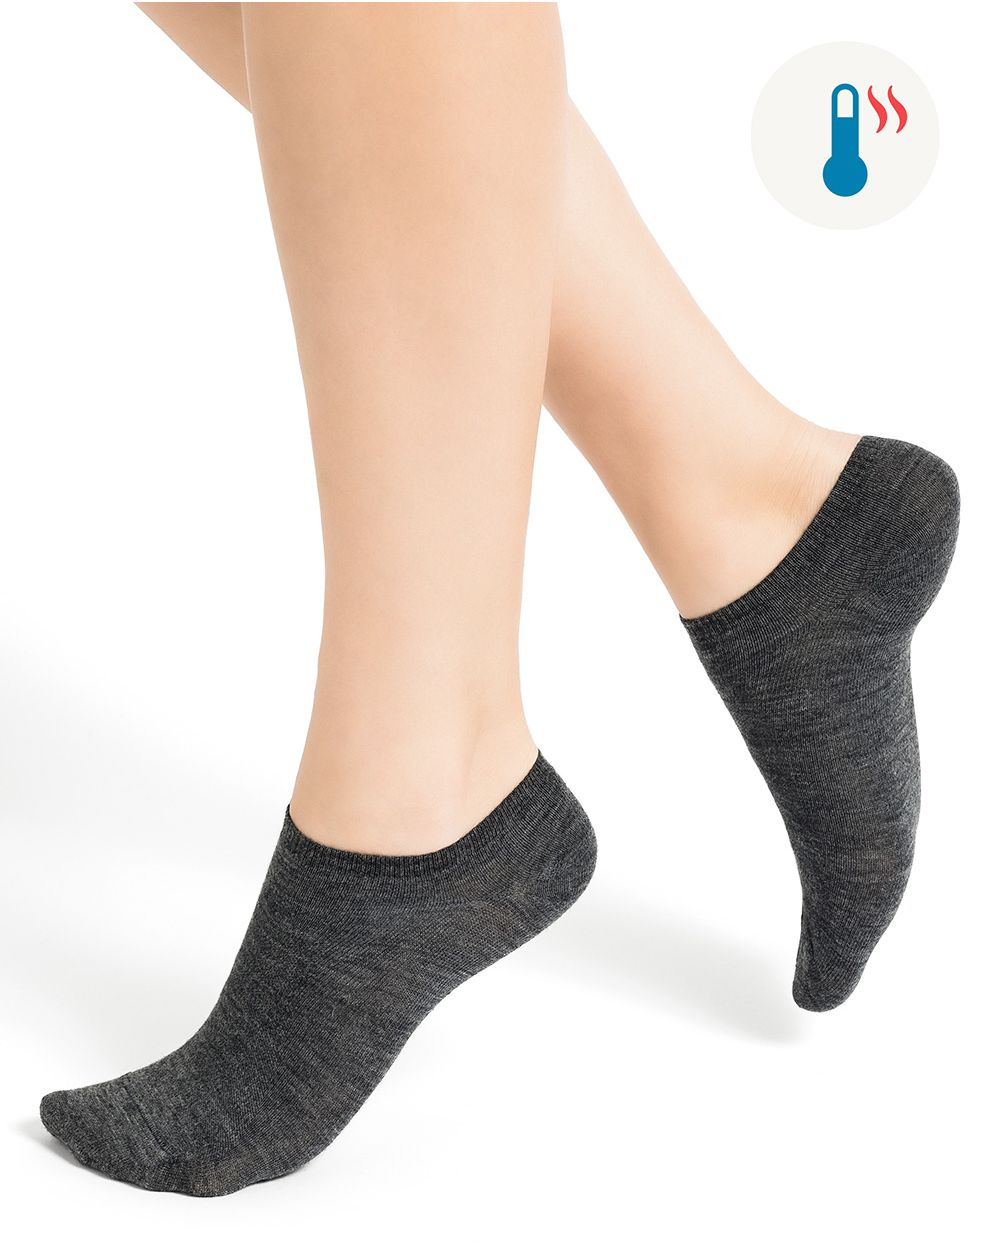 Thin plain wool trainer socks